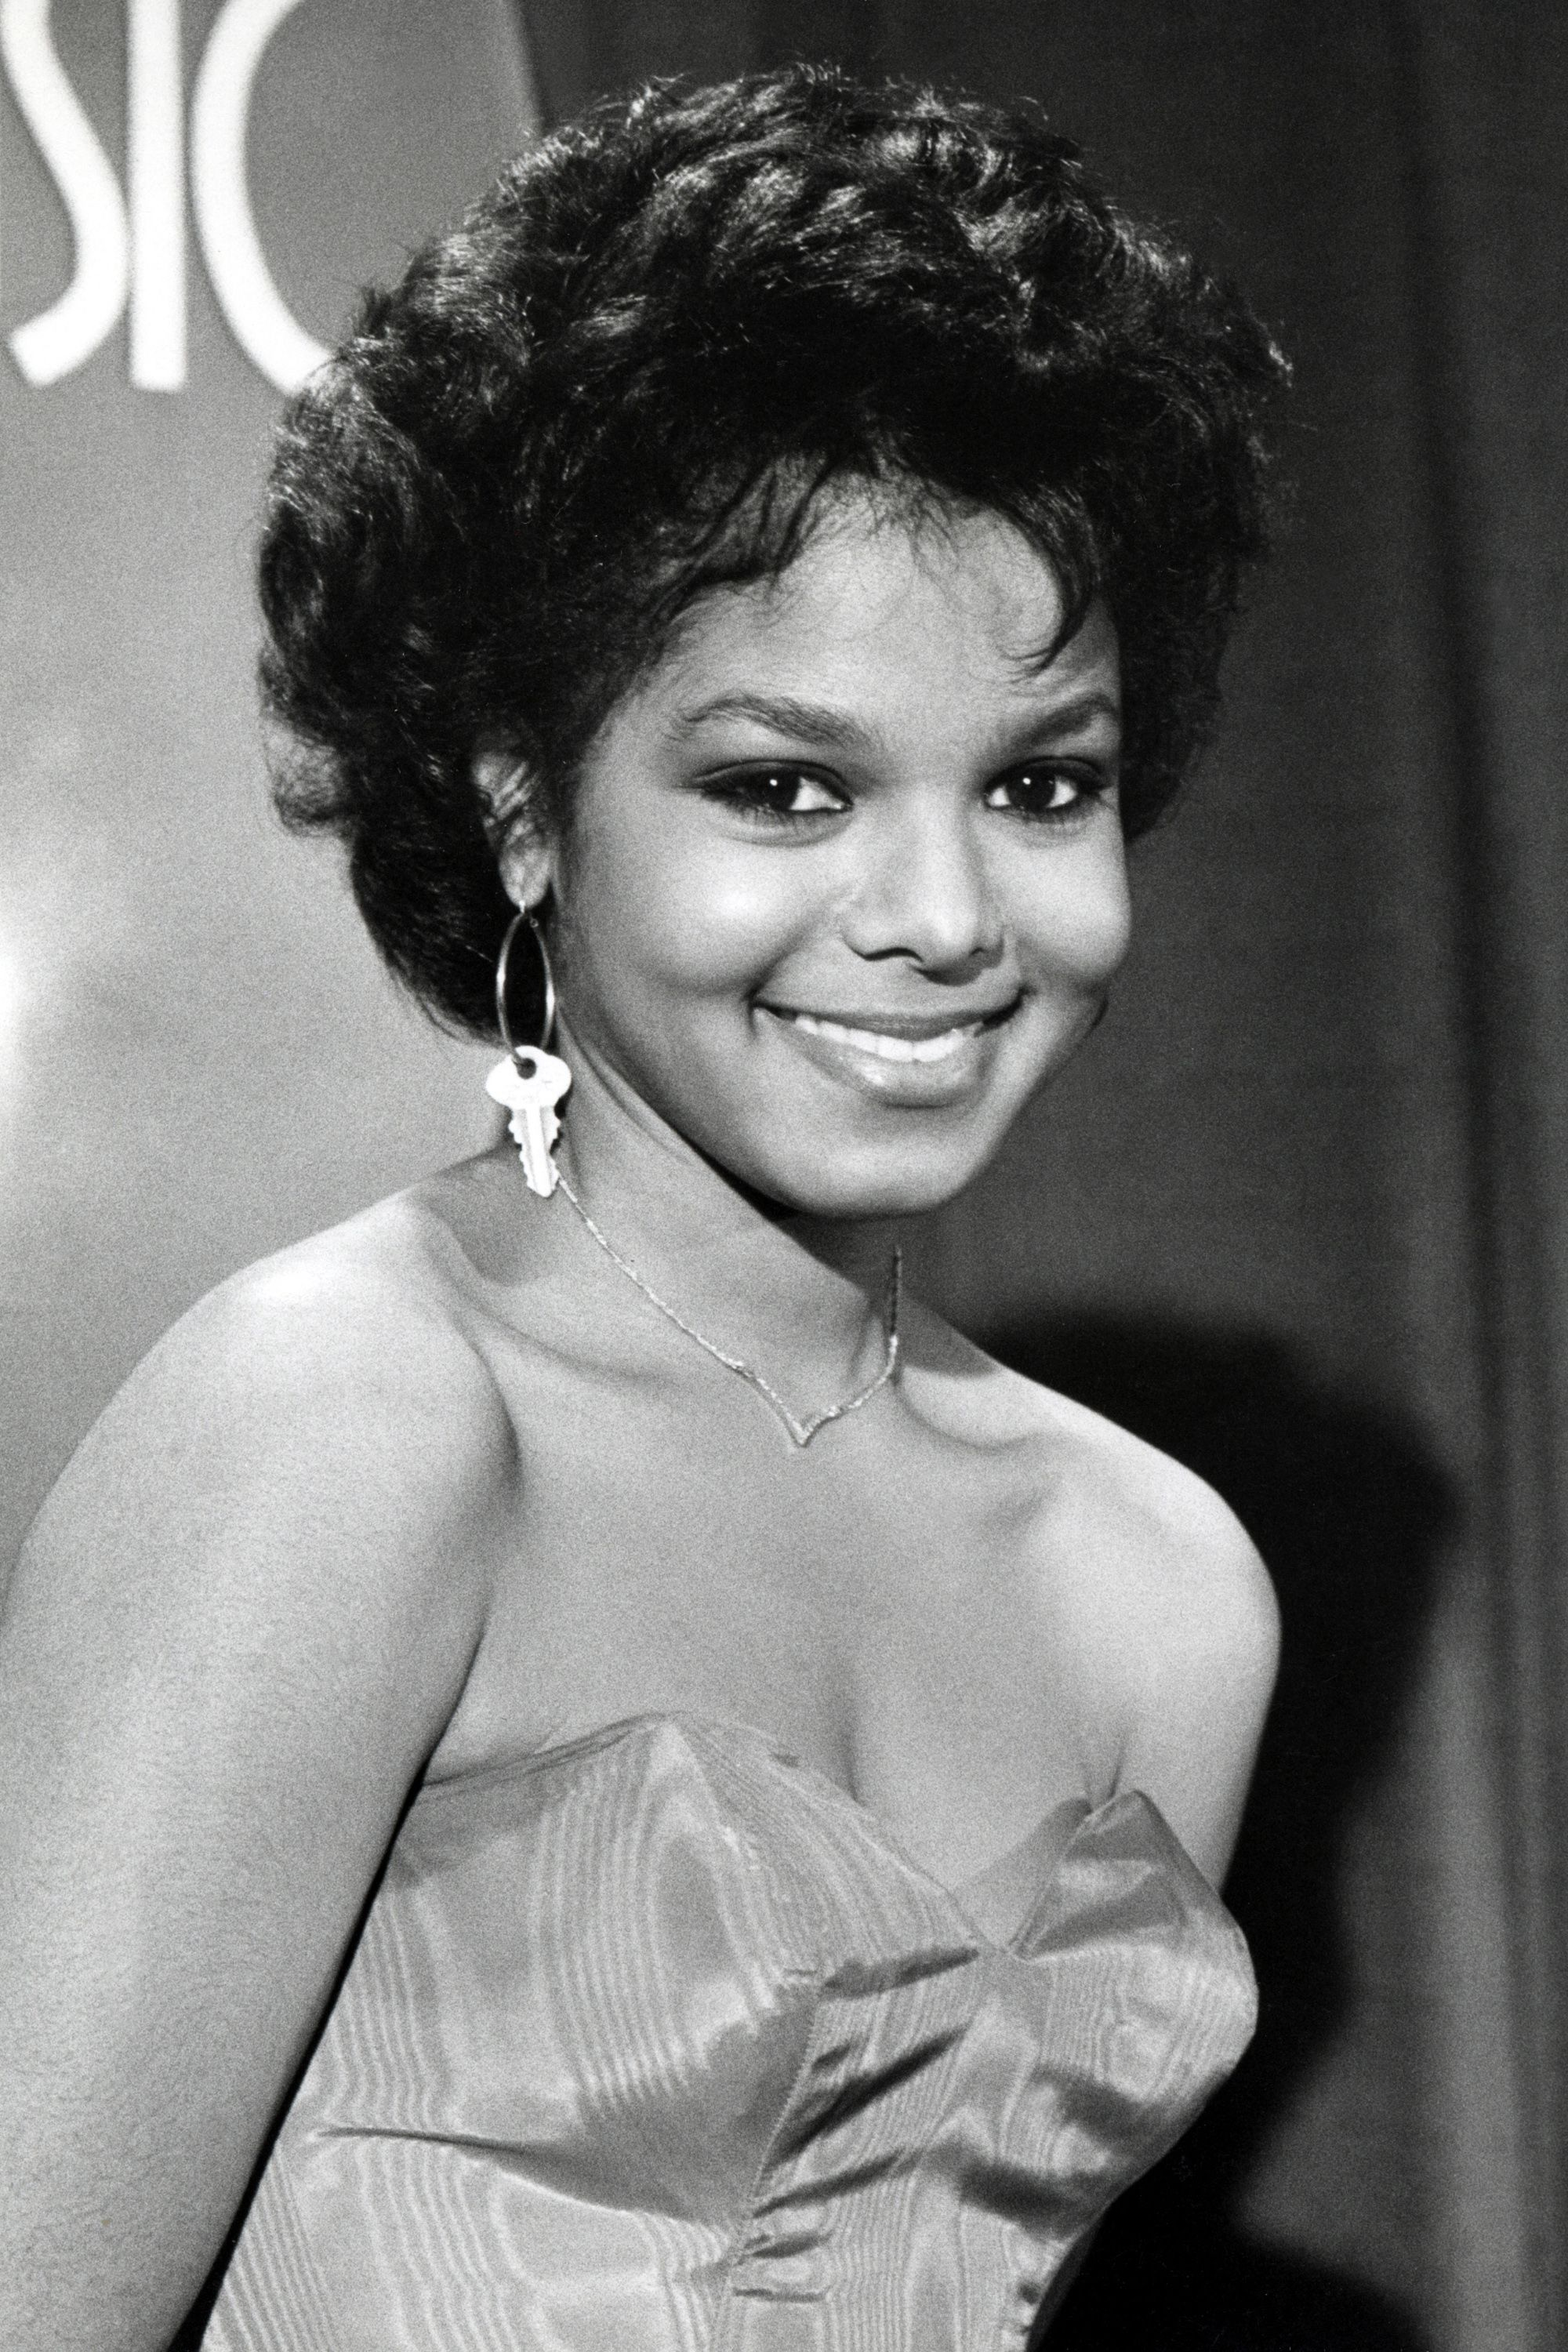 janet jackson turns 50 years old - janet jackson photos and career